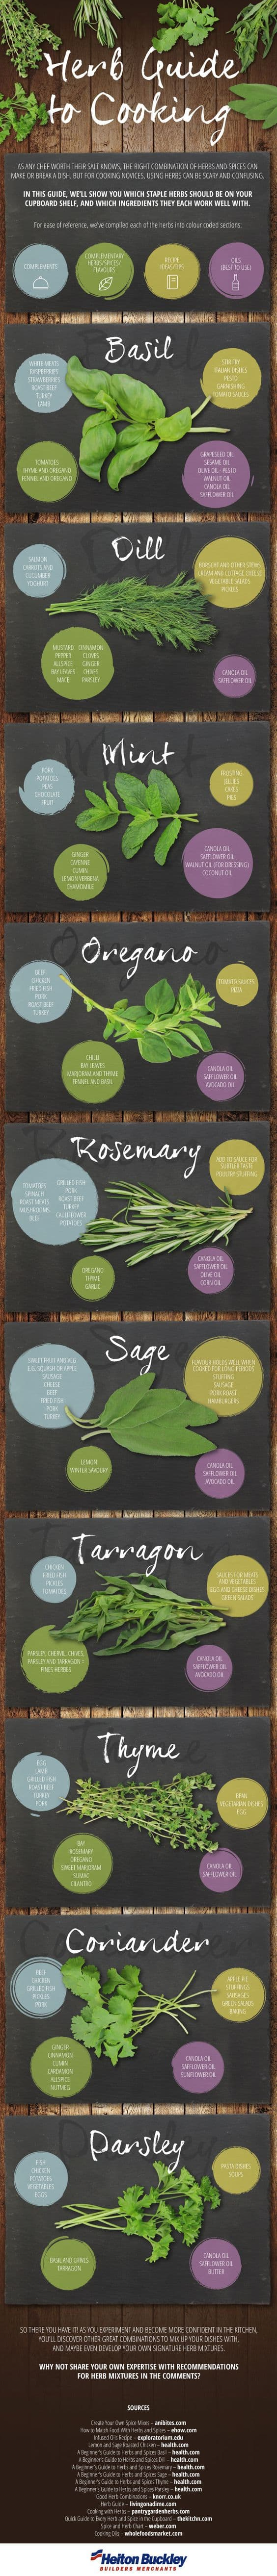 Guide to Using Herbs To Cook Delicious Healthy Meals